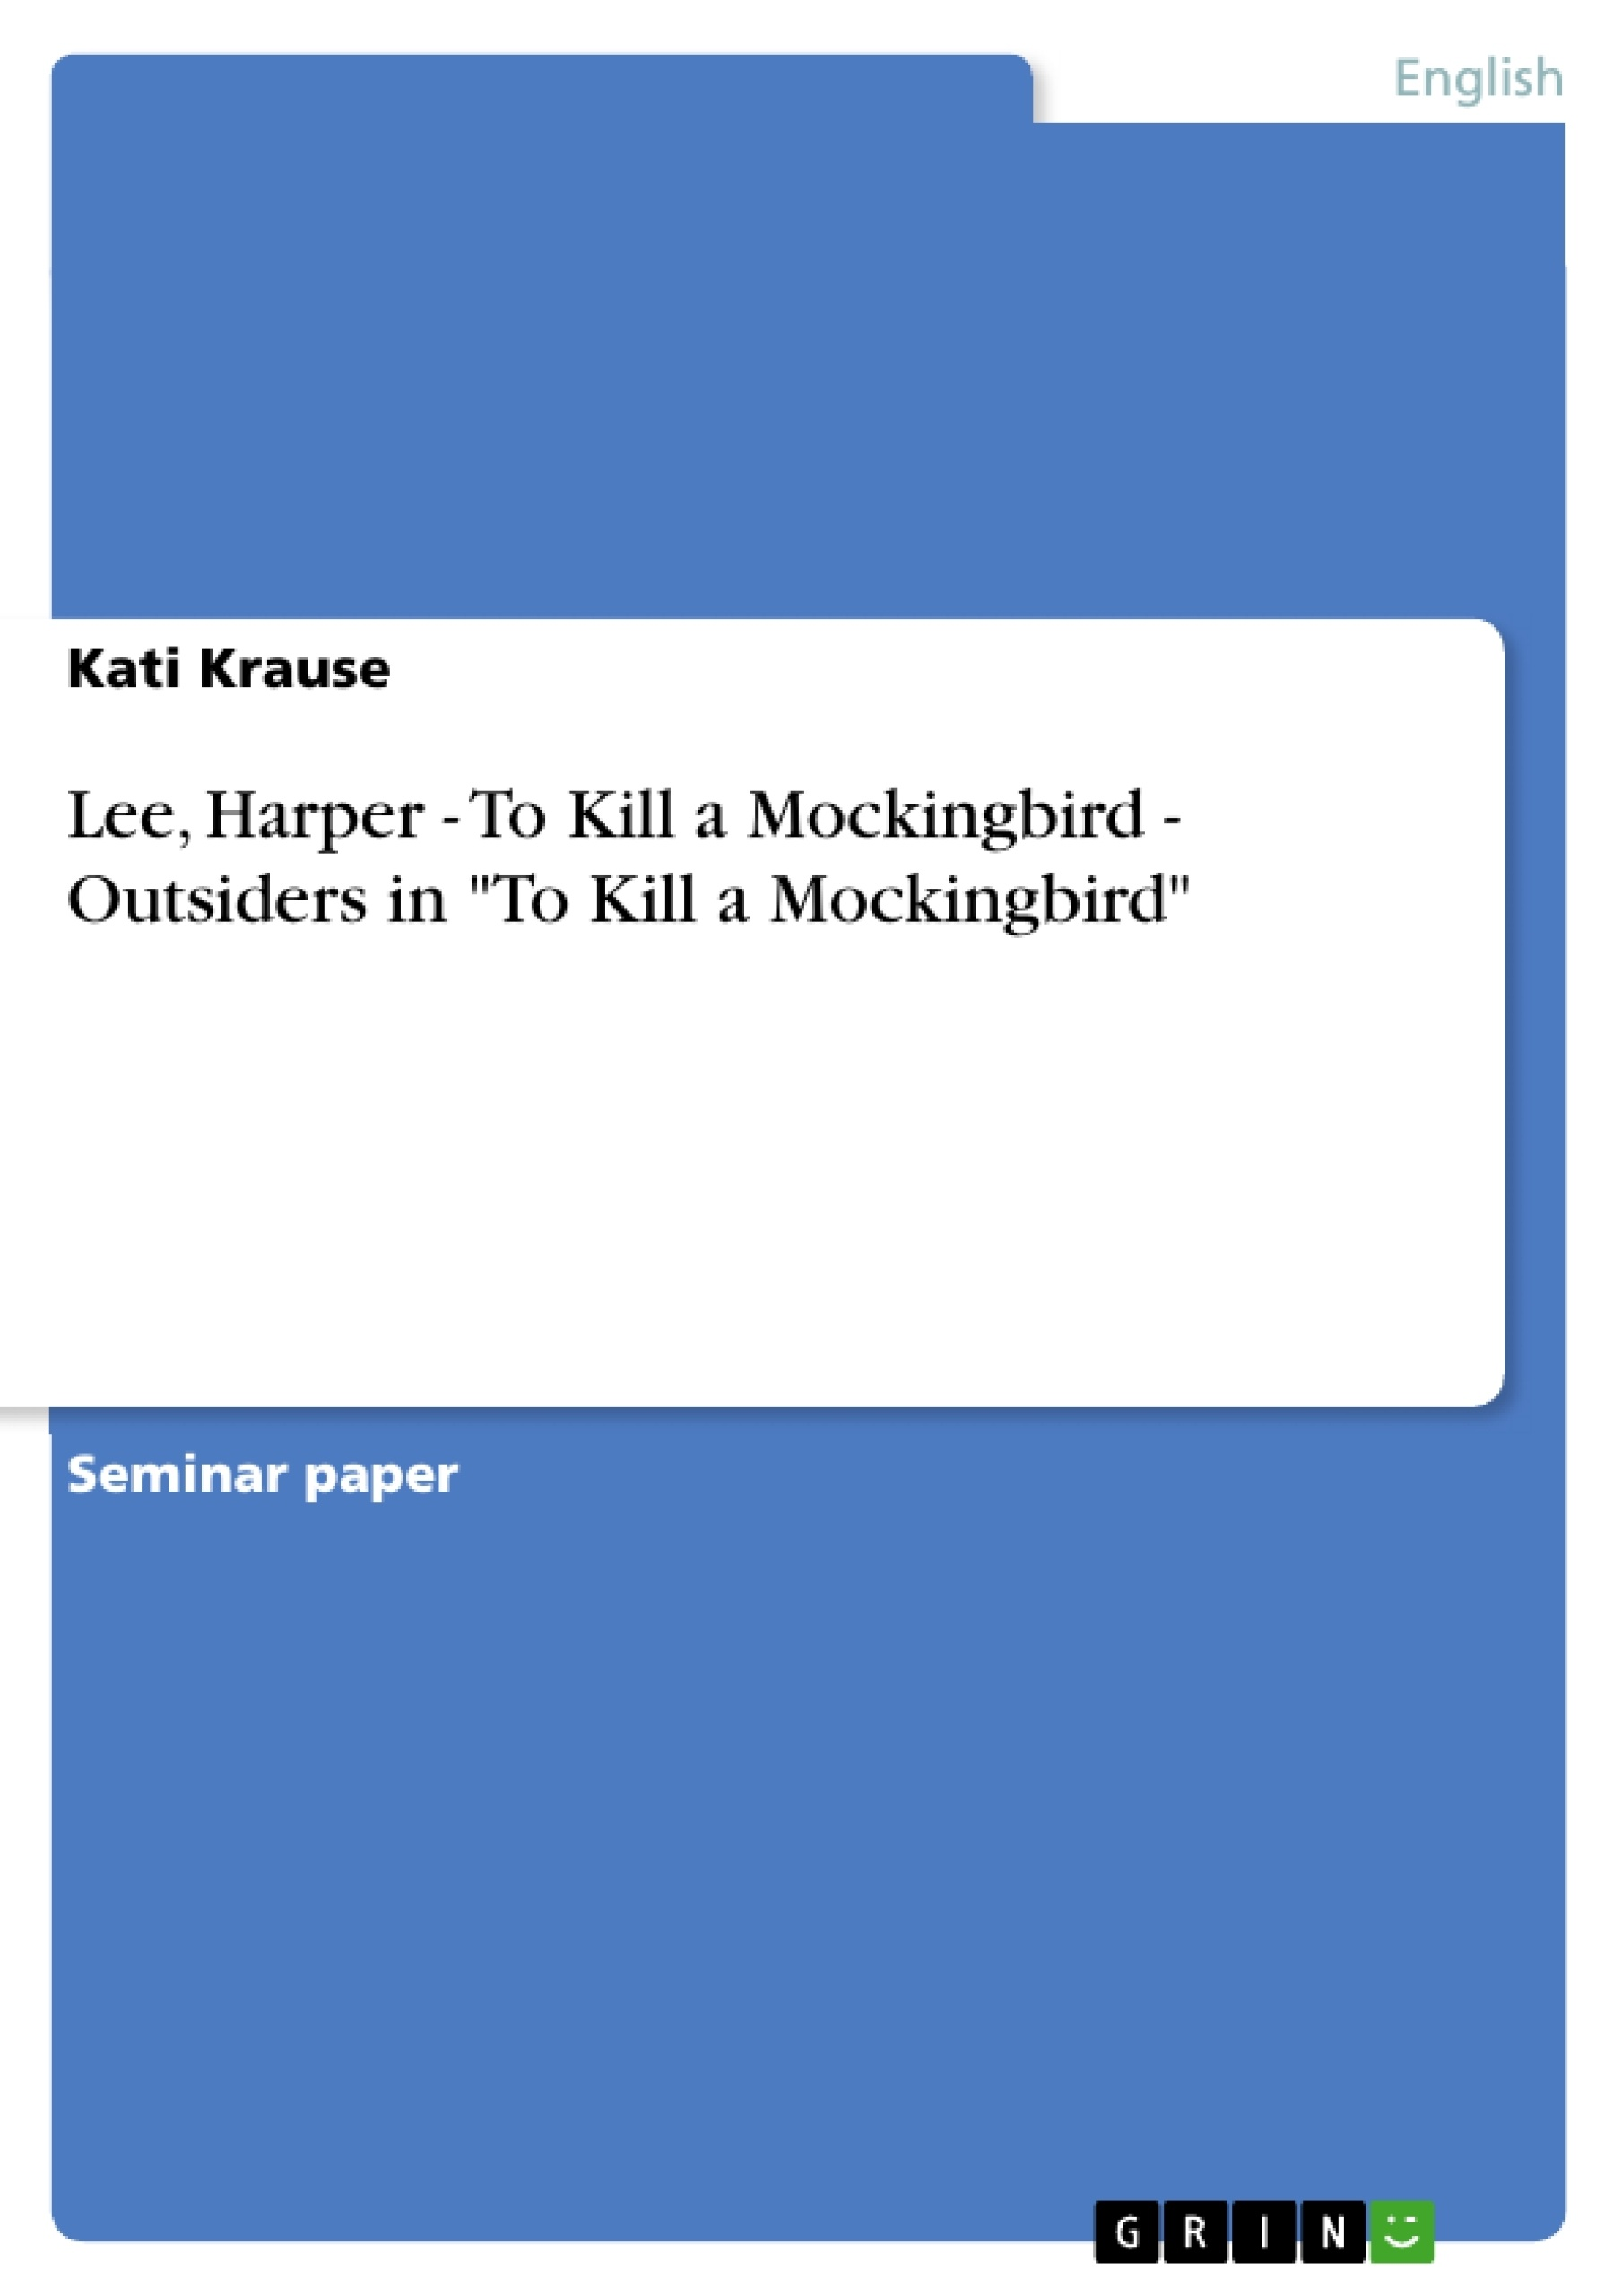 to kill a mockingbird essay on prejudice kill a mockingbird essay  lee harper to kill a mockingbird outsiders in to kill a upload your own papers earn